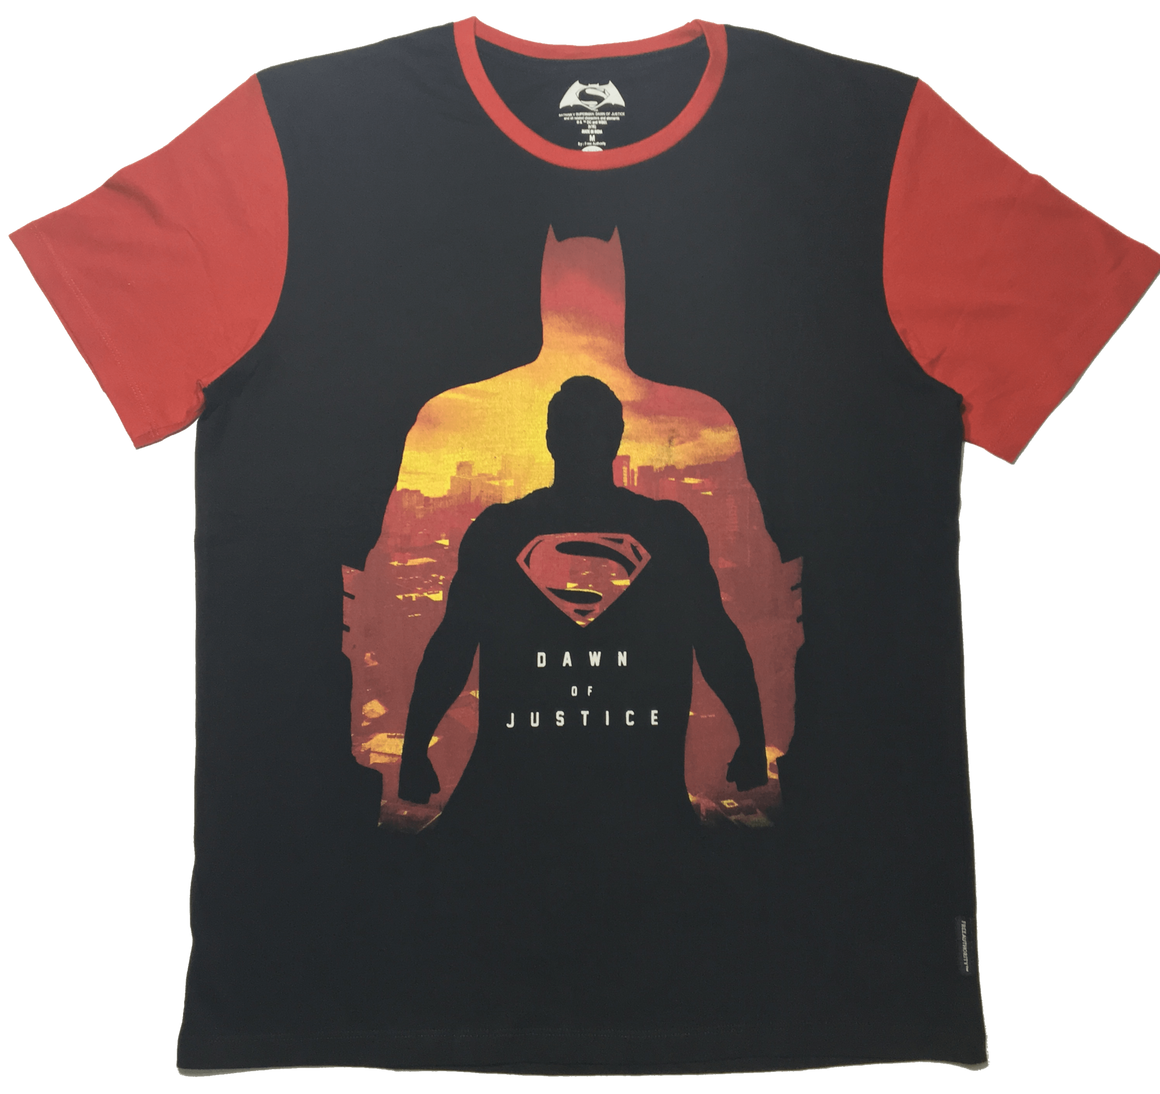 Dawn of Justice Black T-Shirt by Bio World-Bio World- www.superherotoystore.com-T-Shirt